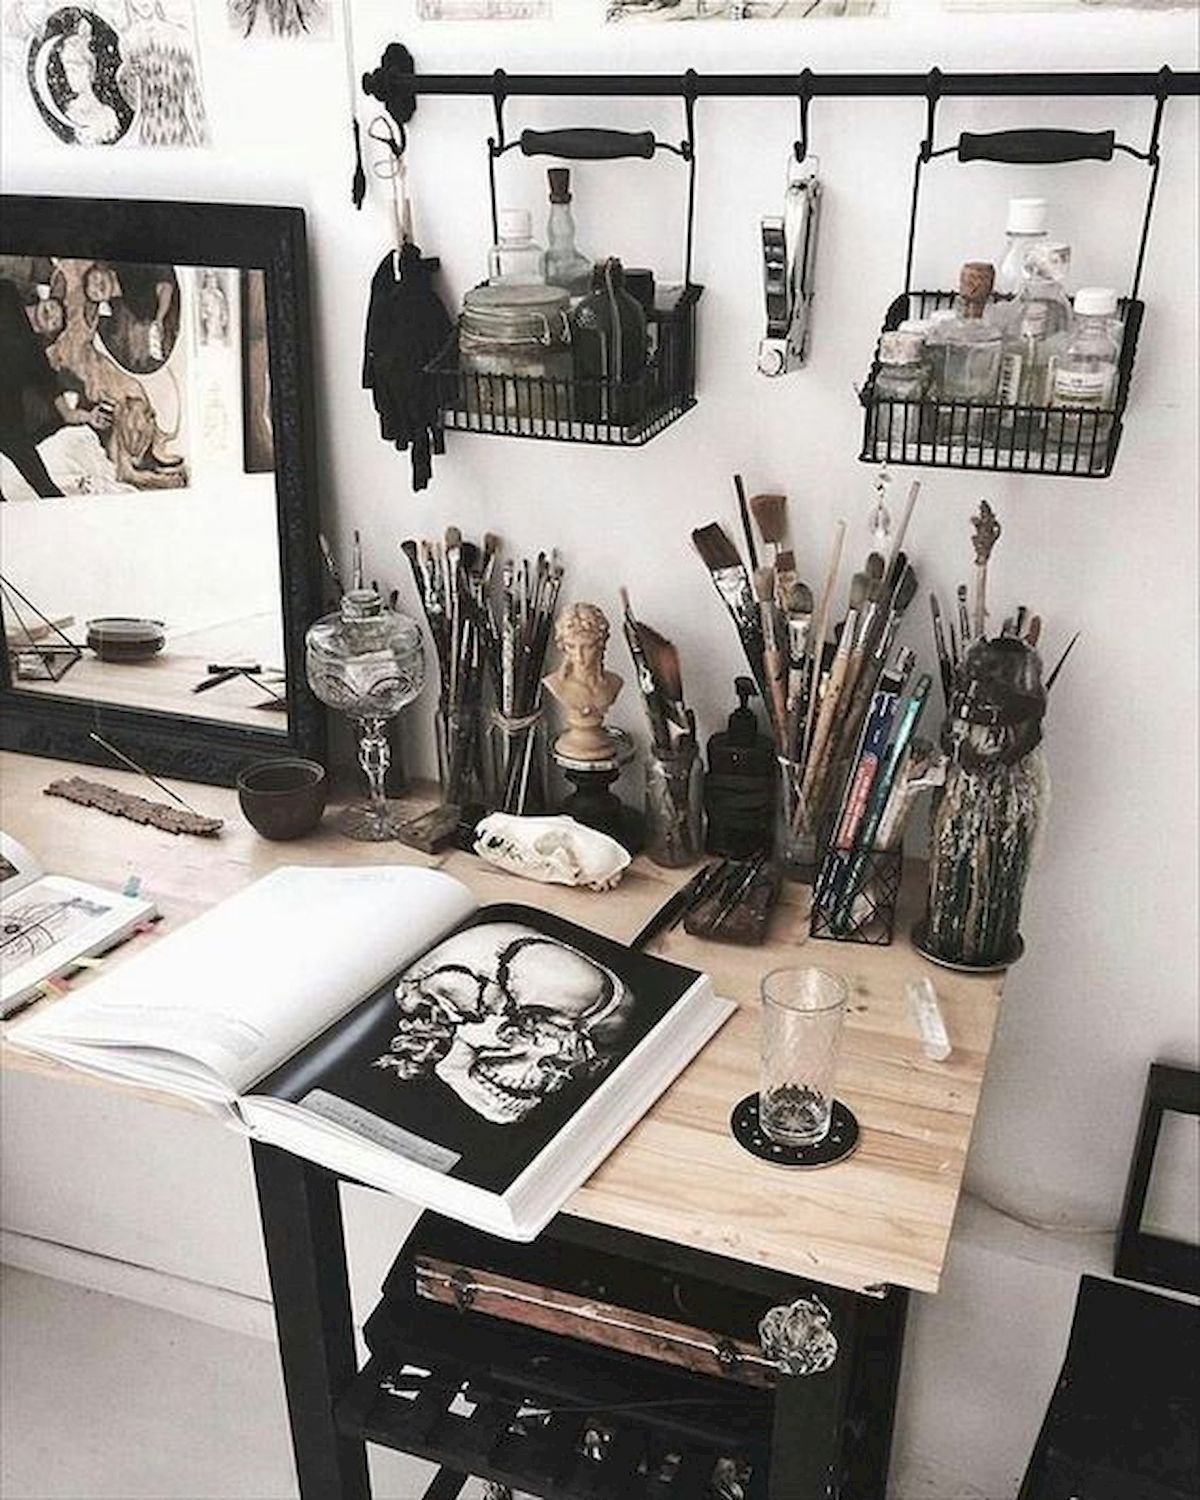 Cool 58 Fantastic Art Studio Organization Ideas And Decor Source Https Artmyideas Com 2019 01 30 58 Fanta Art Studio Space Art Studio Organization Art Desk